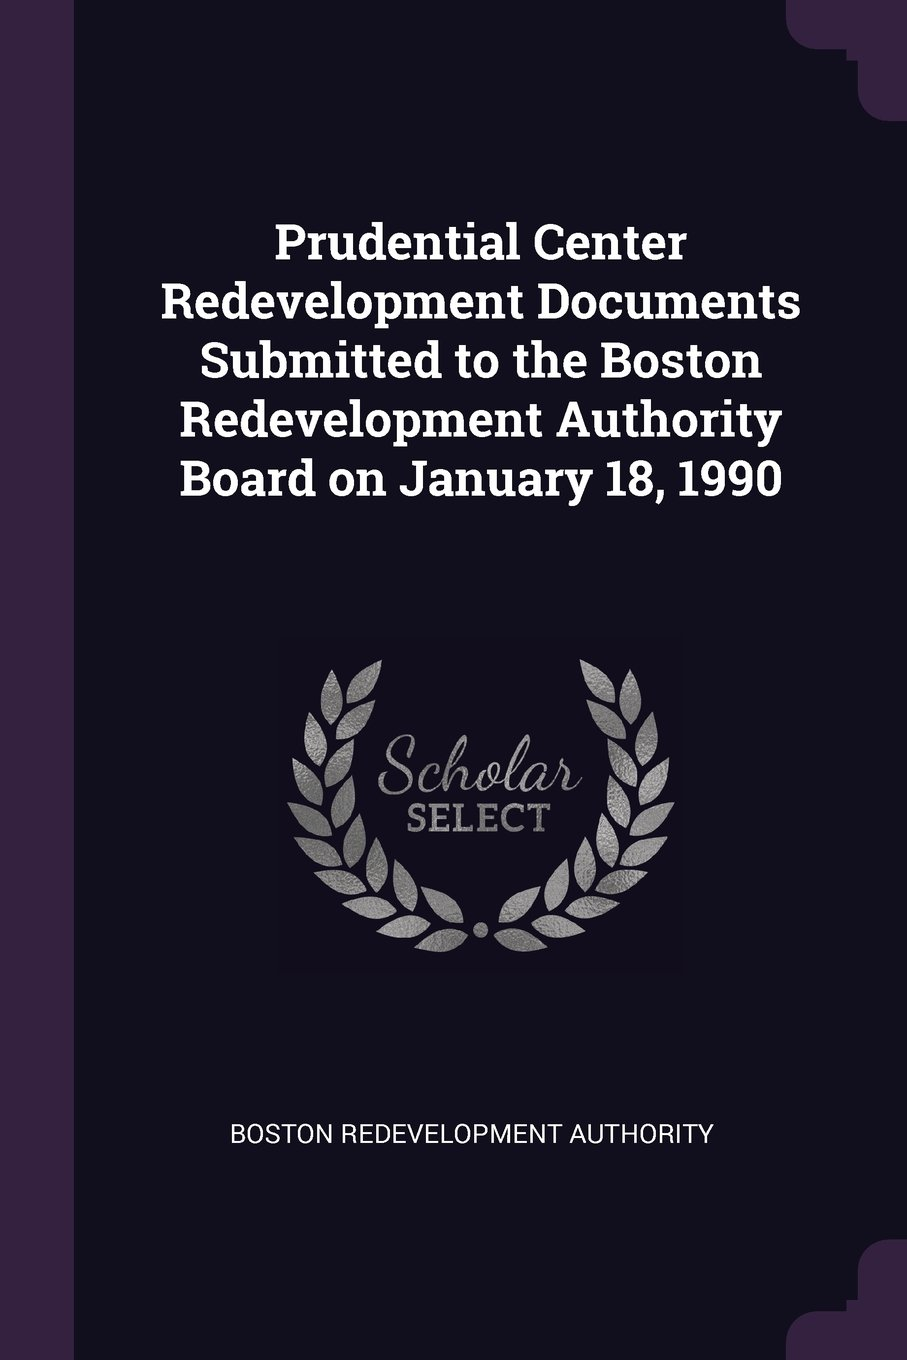 Download Prudential Center Redevelopment Documents Submitted to the Boston Redevelopment Authority Board on January 18, 1990 PDF